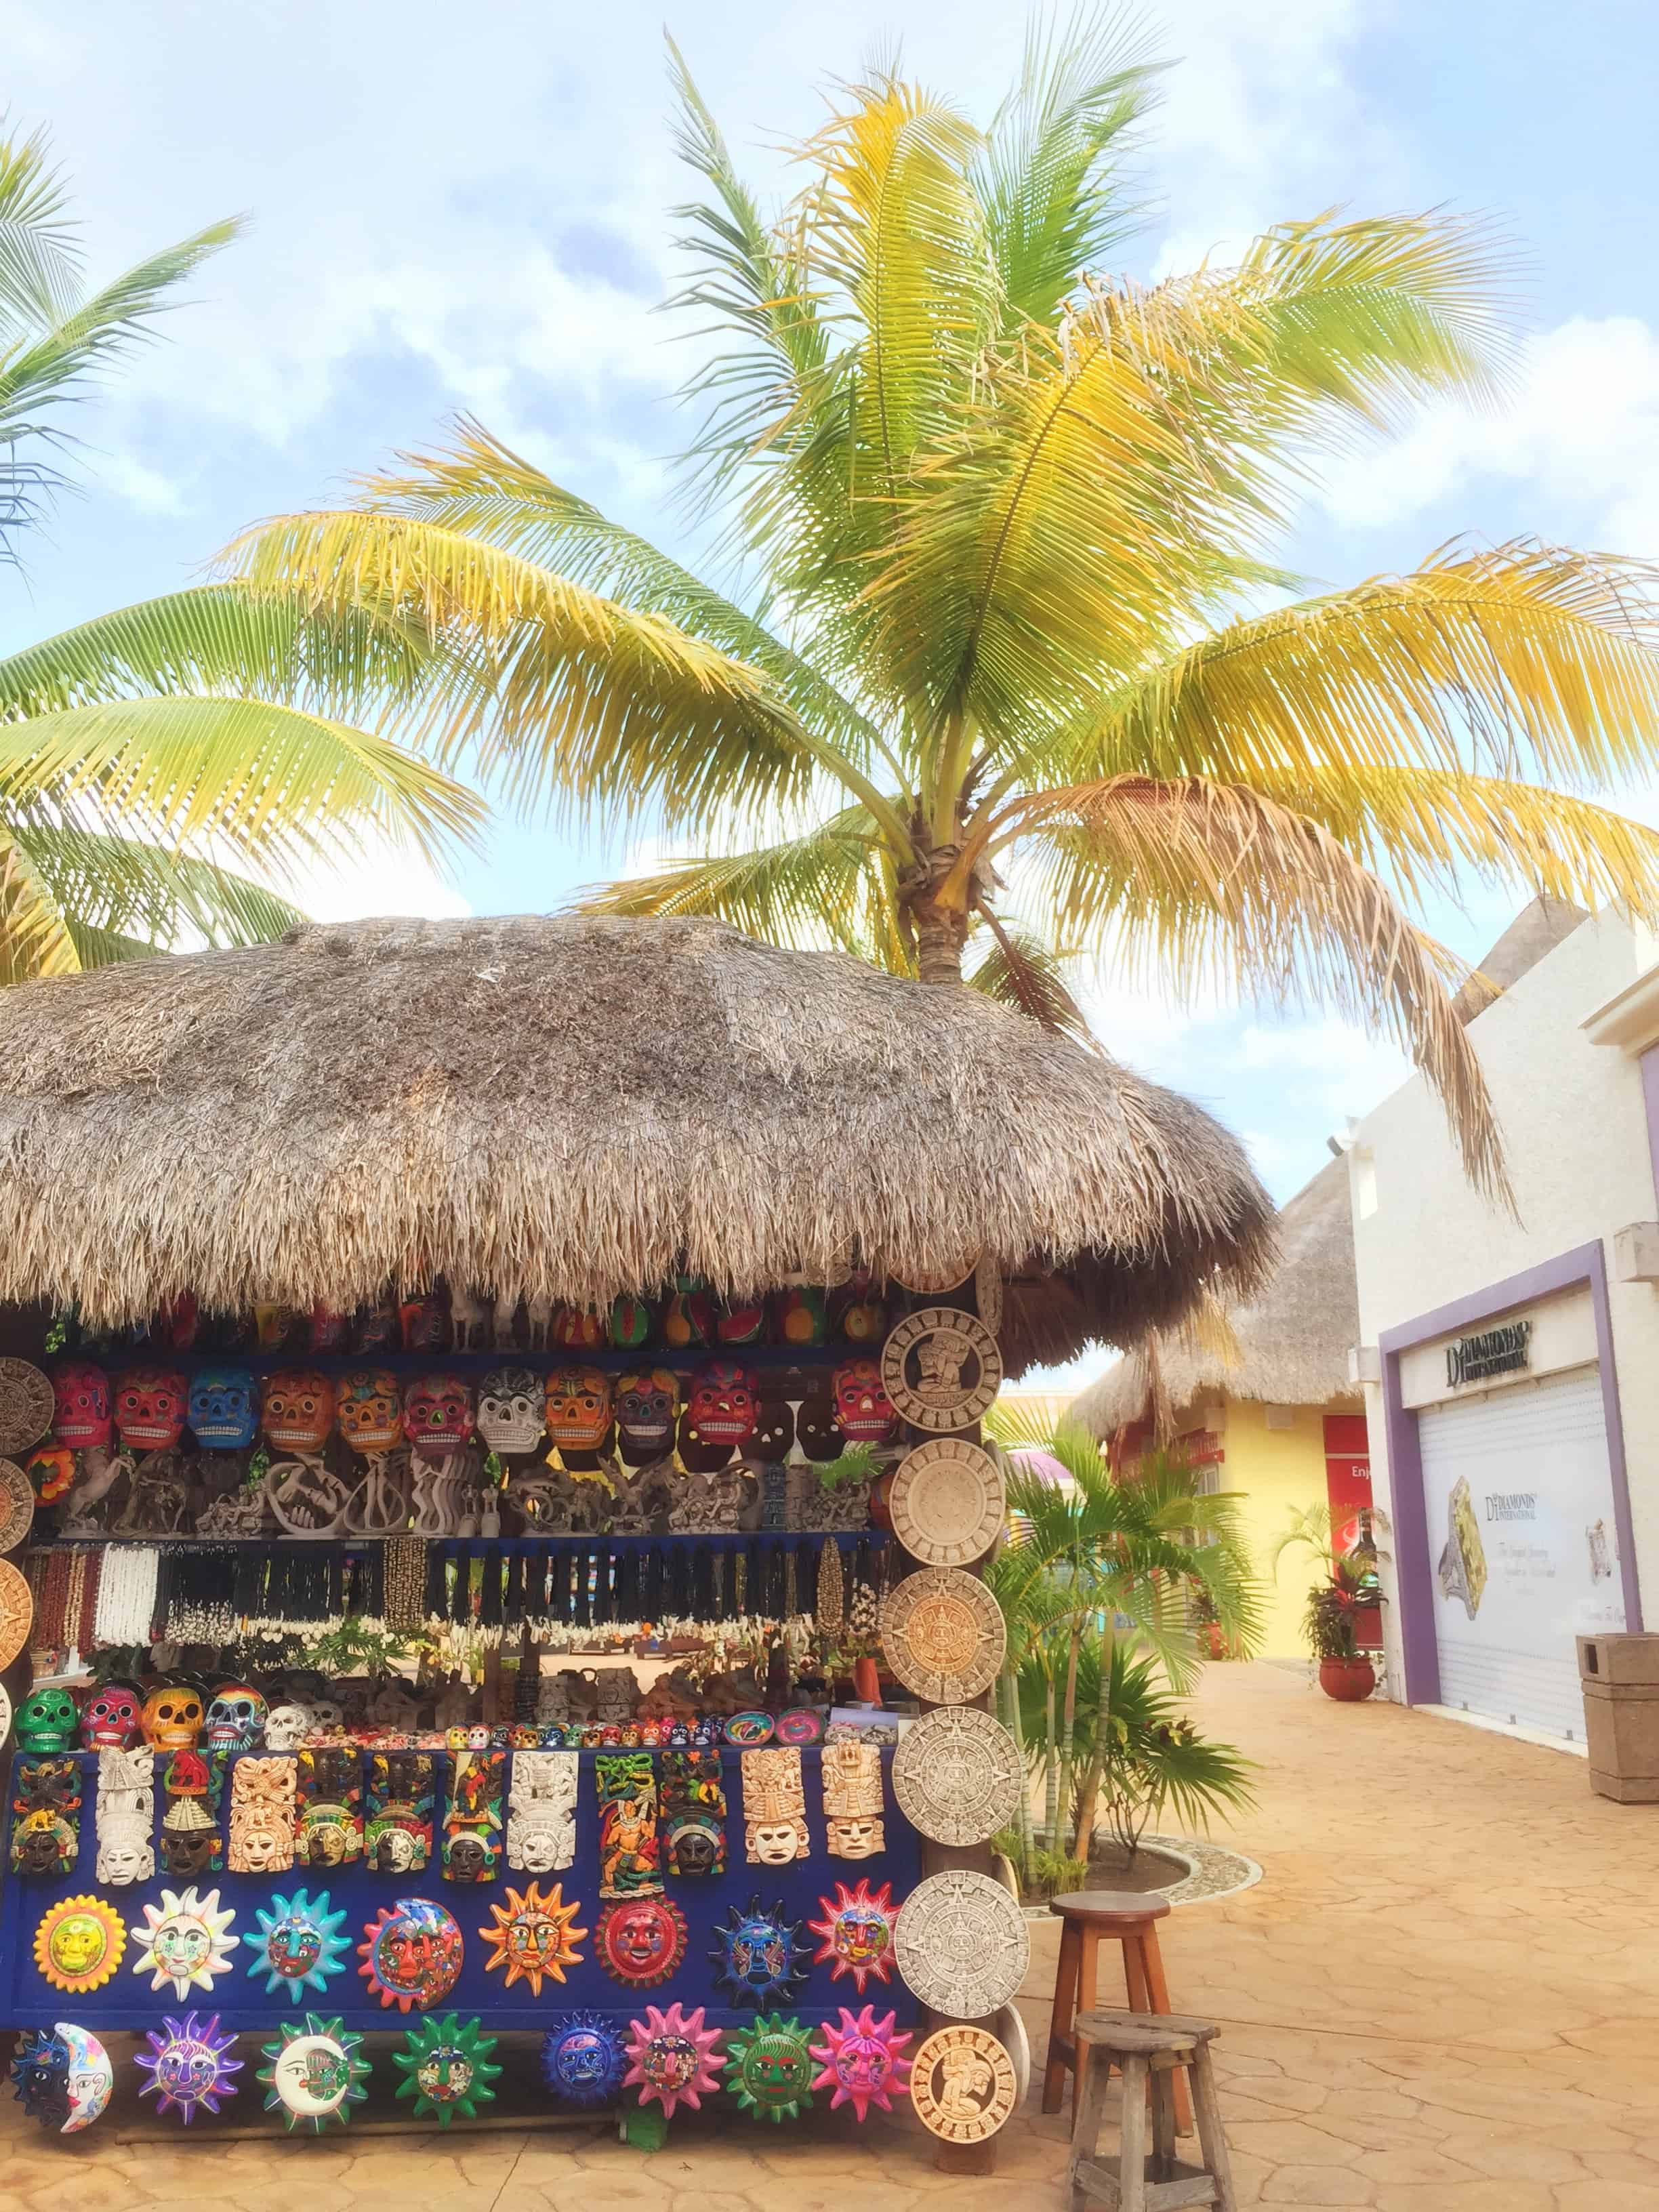 The Shops Of Cozumel Photograph by Jason Politte |Cozumel Mexico Stores With Boots